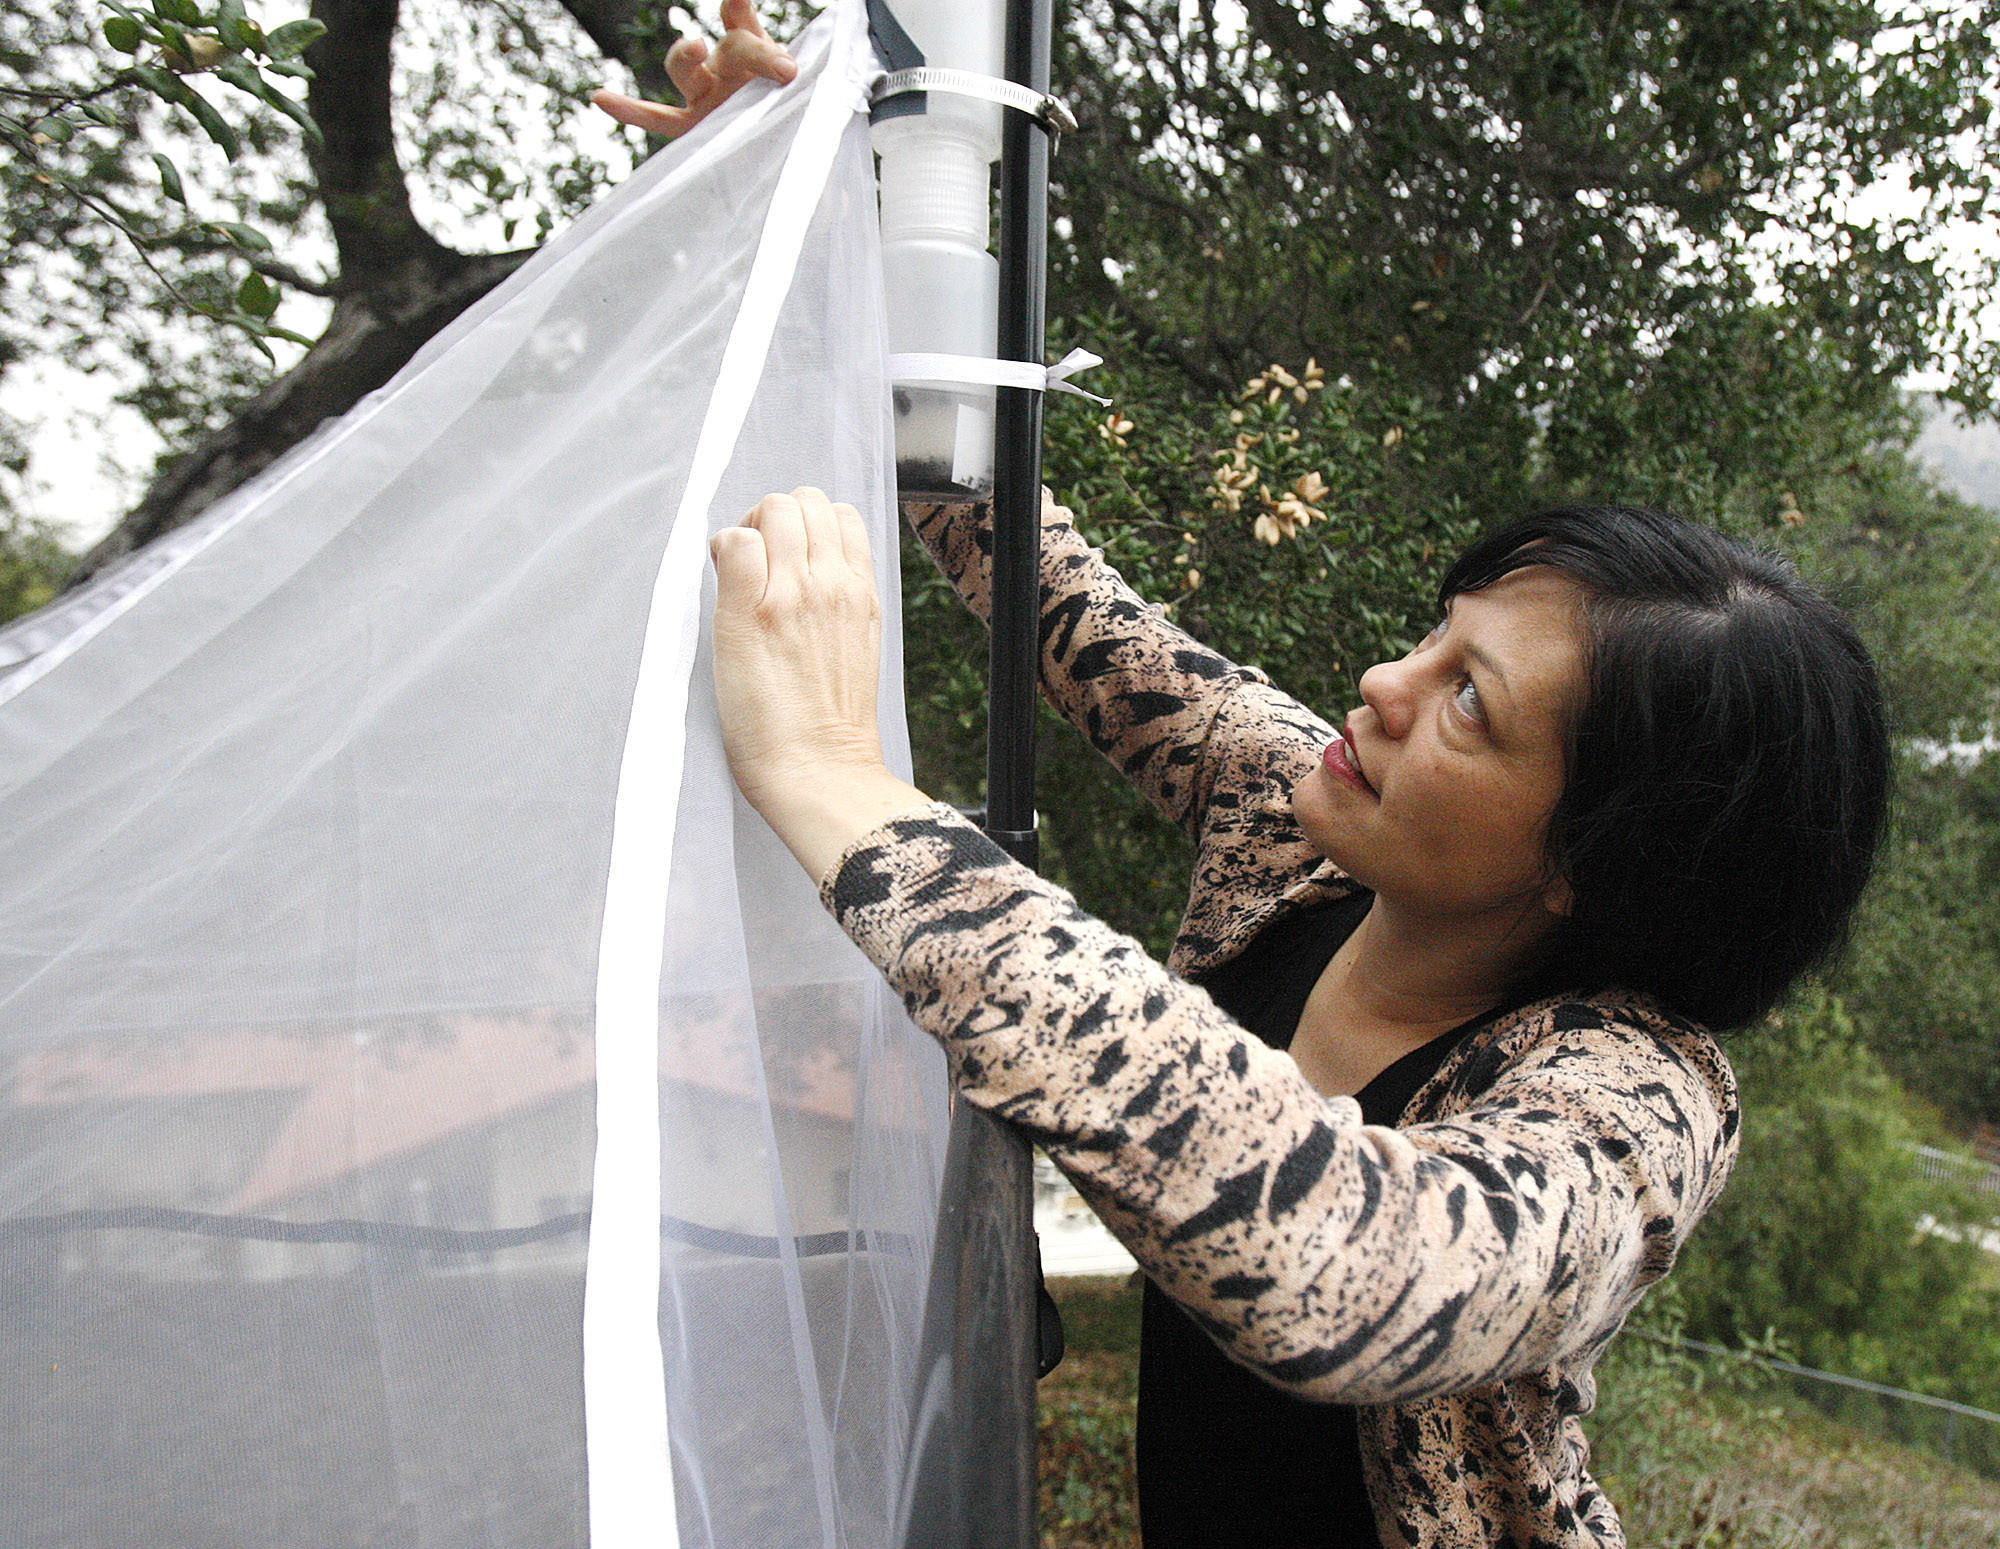 Assistant Collections Manager Lisa Gonzalez of the Entomology Department for the Natural History Museum Bioscan Project points out where spiders set up to easily catch meals inside an insect collection station at a home in Glendale on Thursday, January 30, 2014. There are 30 other sites set up in the Los Angeles area to study insects in the urban environment.